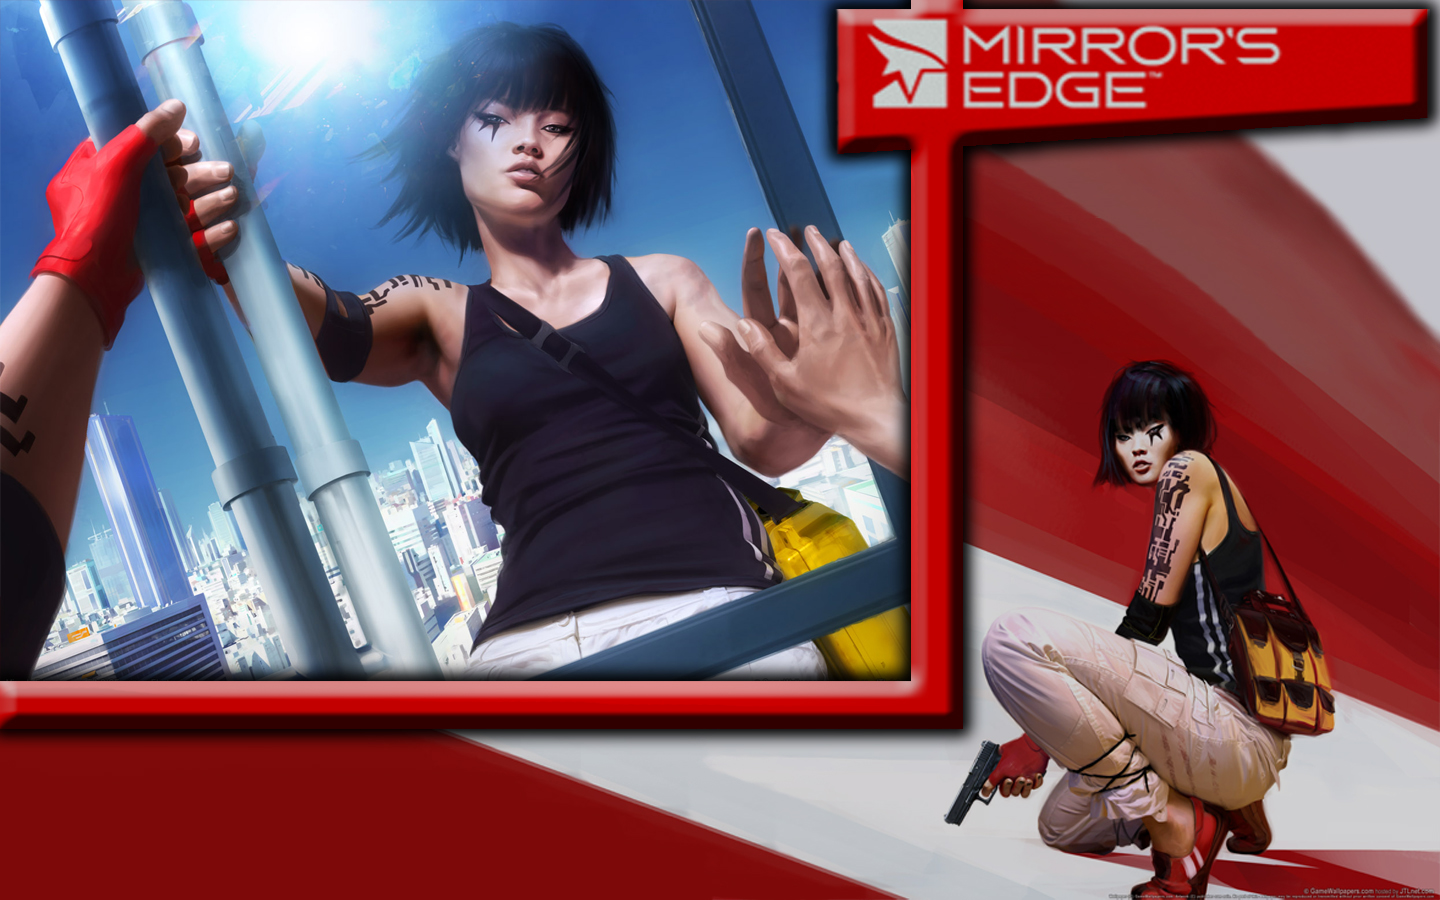 http://fc47.deviantart.com/fs36/f/2008/242/b/9/Mirrors_Edge_Wallpaper_by_Noodles02.jpg